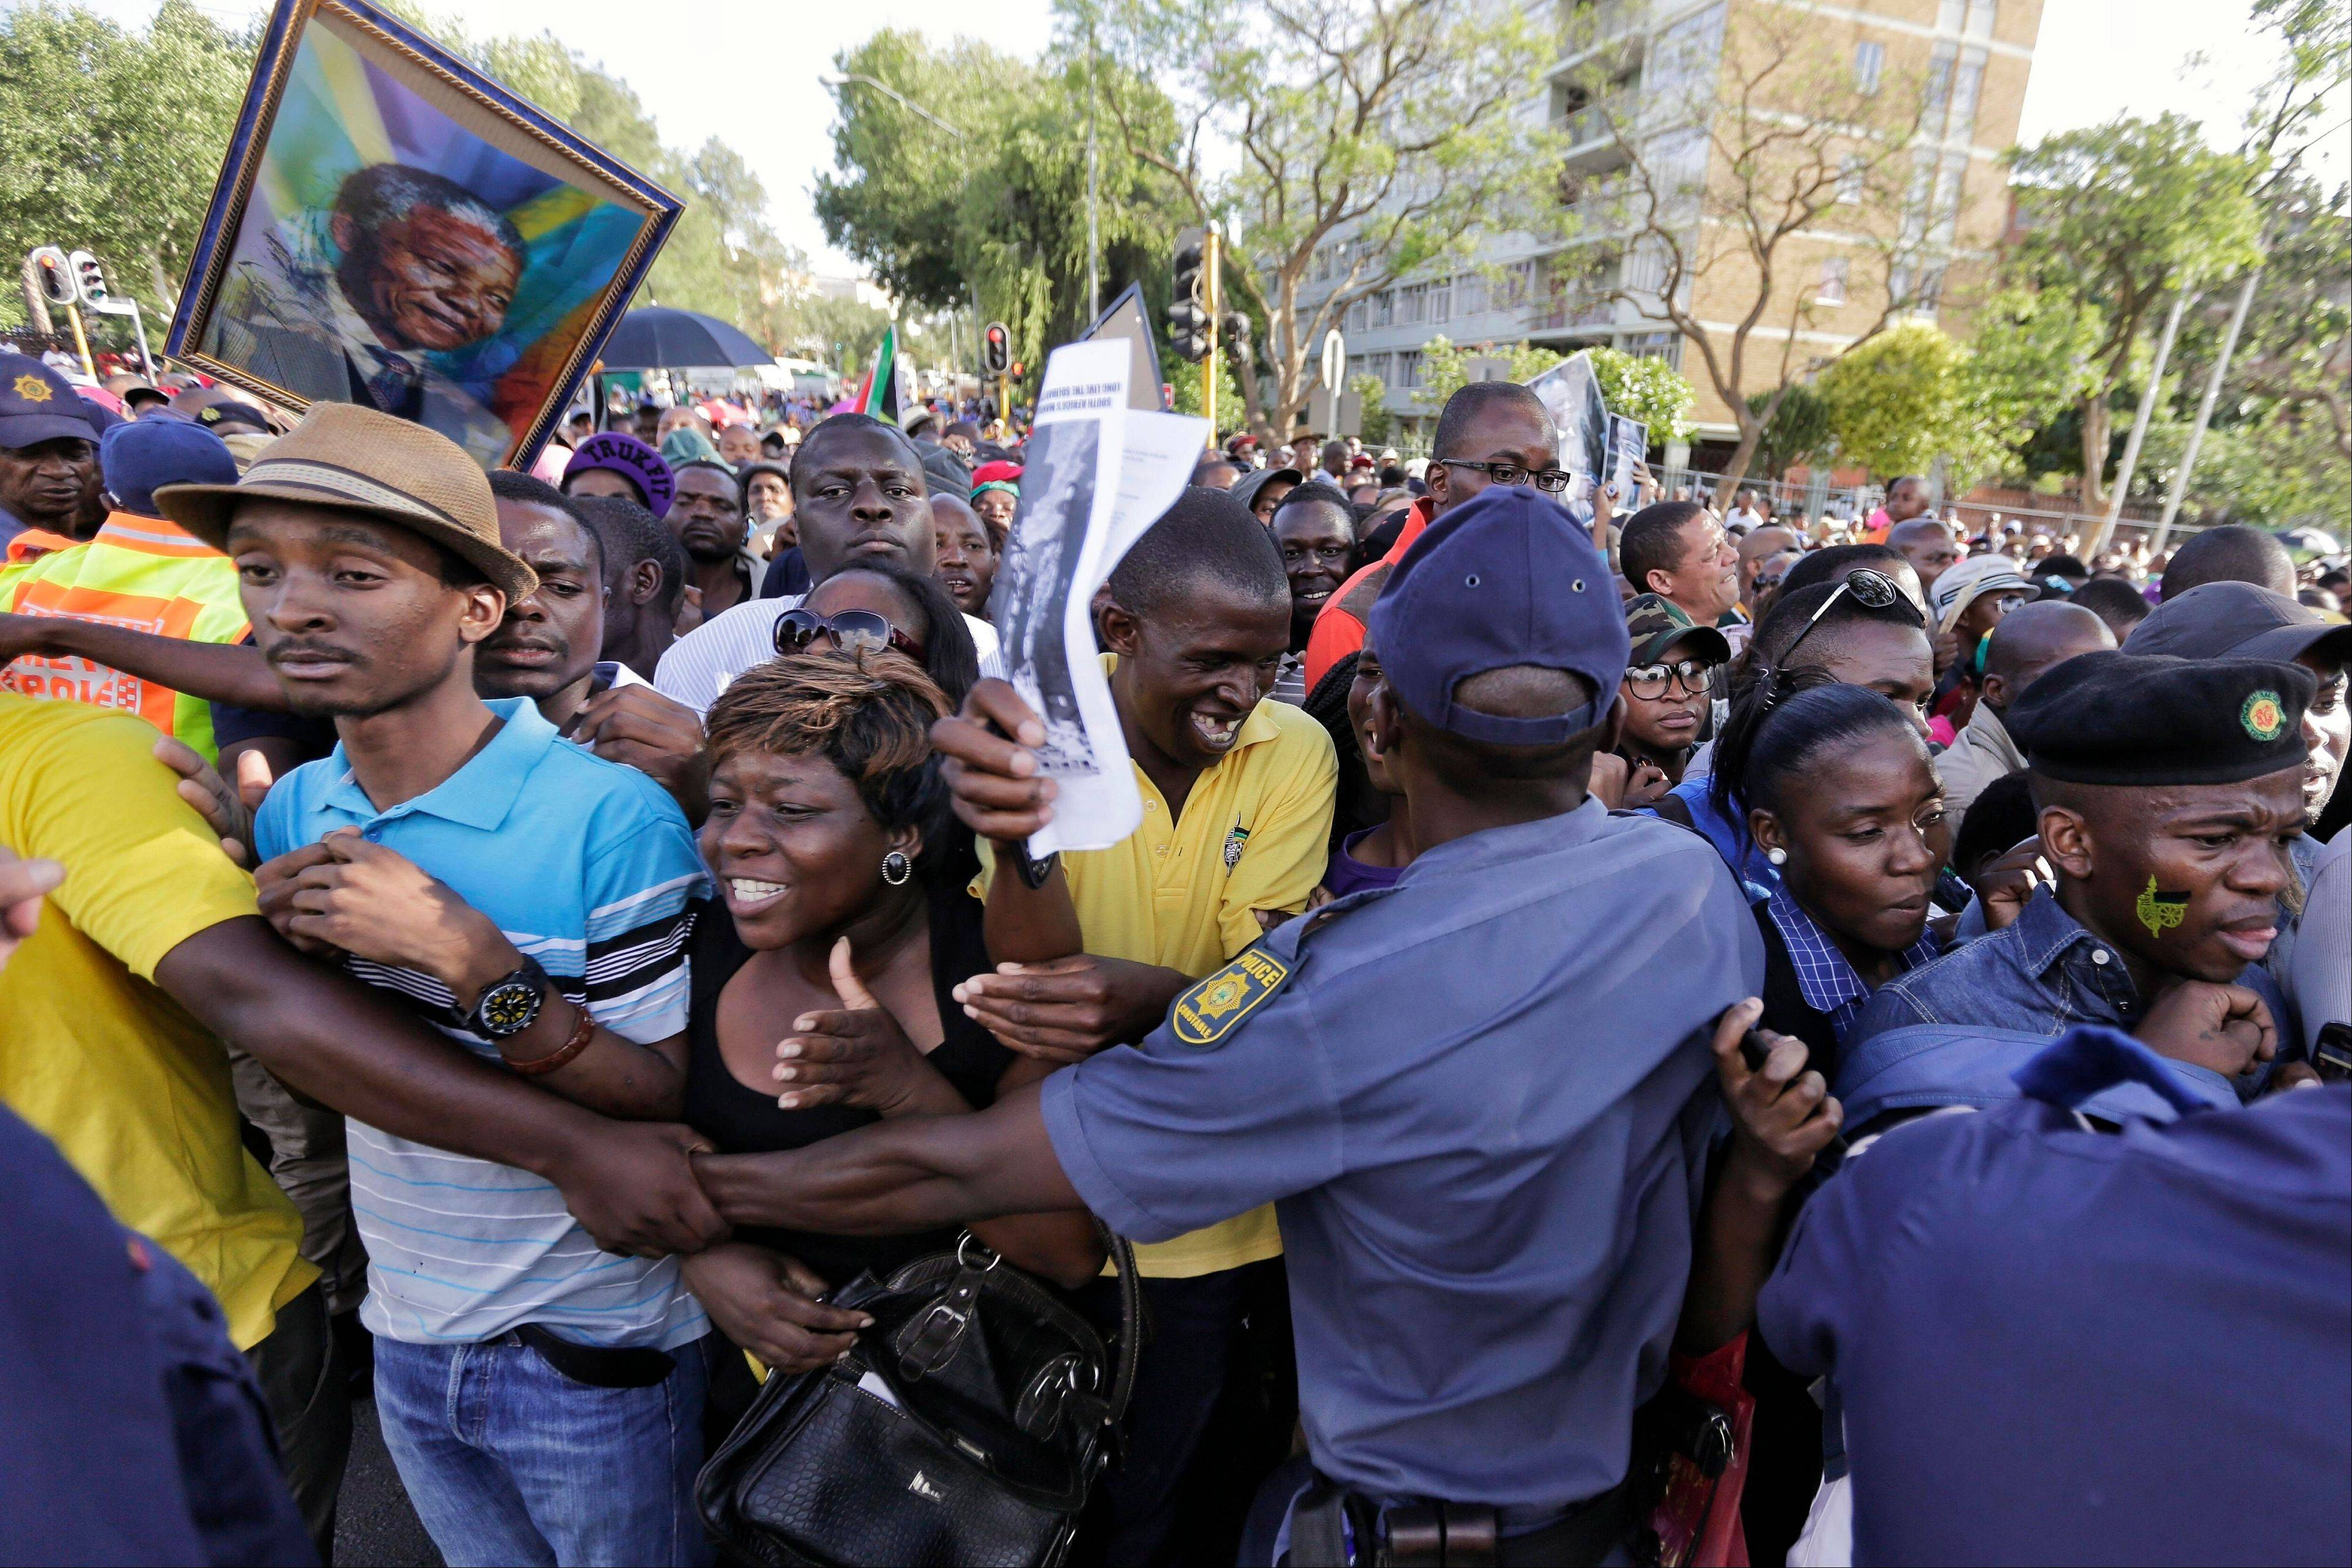 Hundreds storm police barrier to see Mandela body